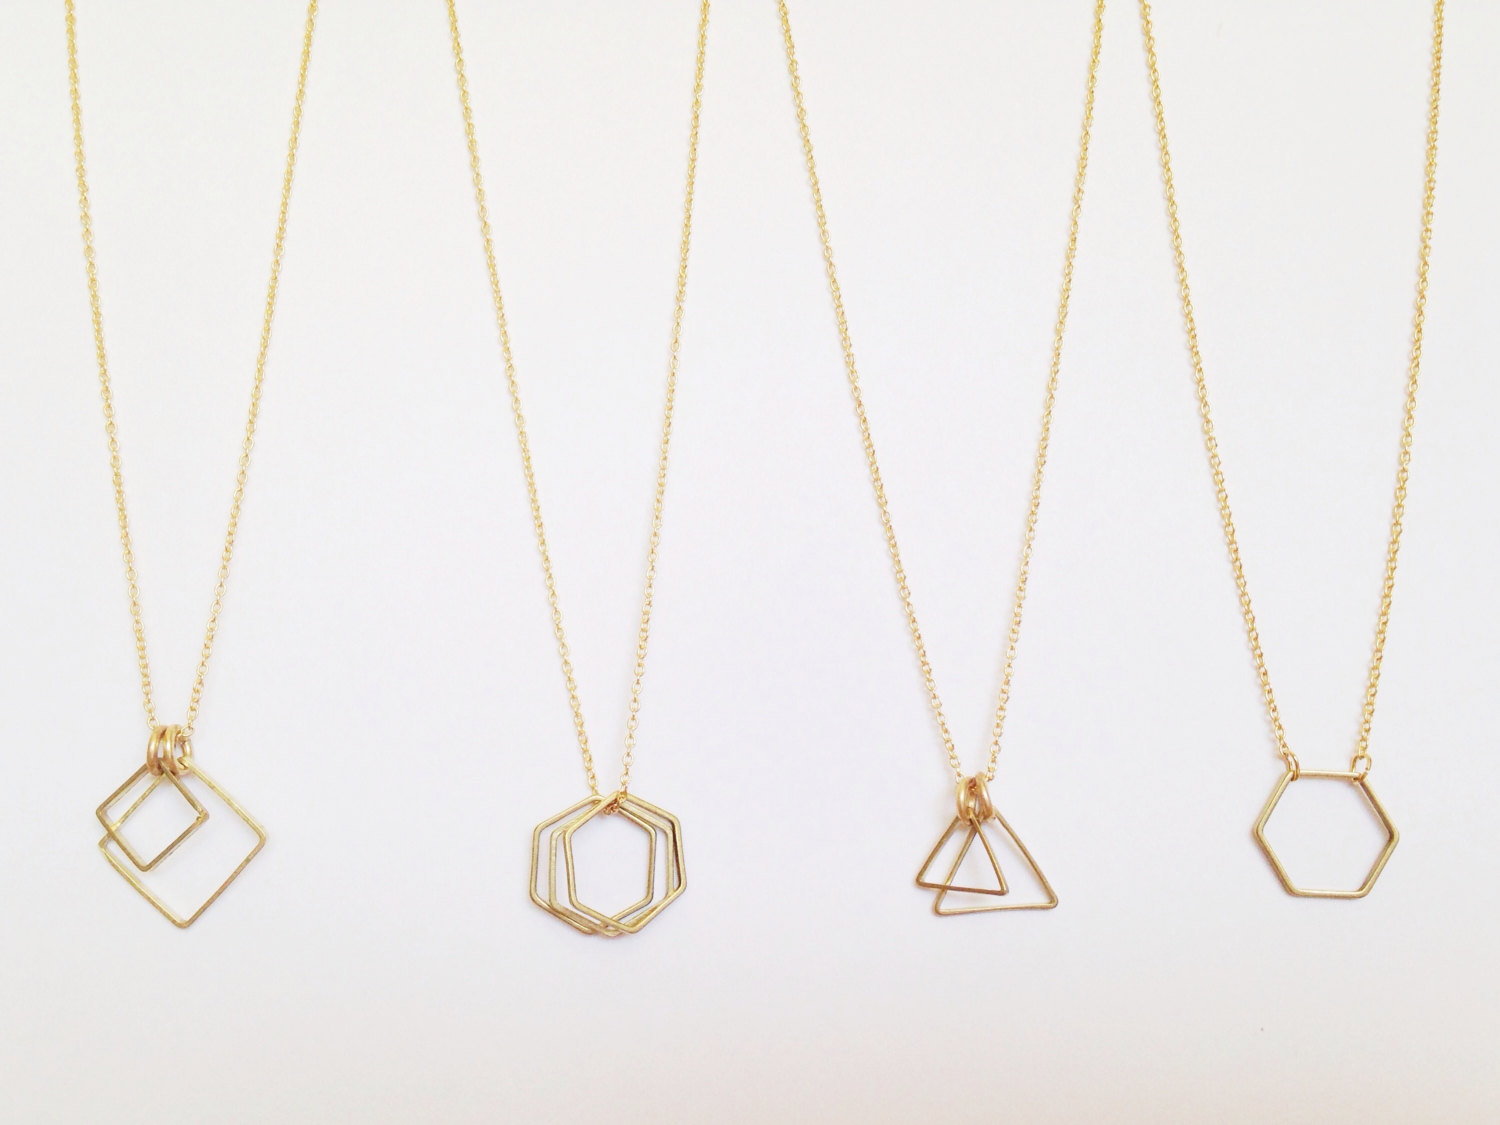 necklaces(1)